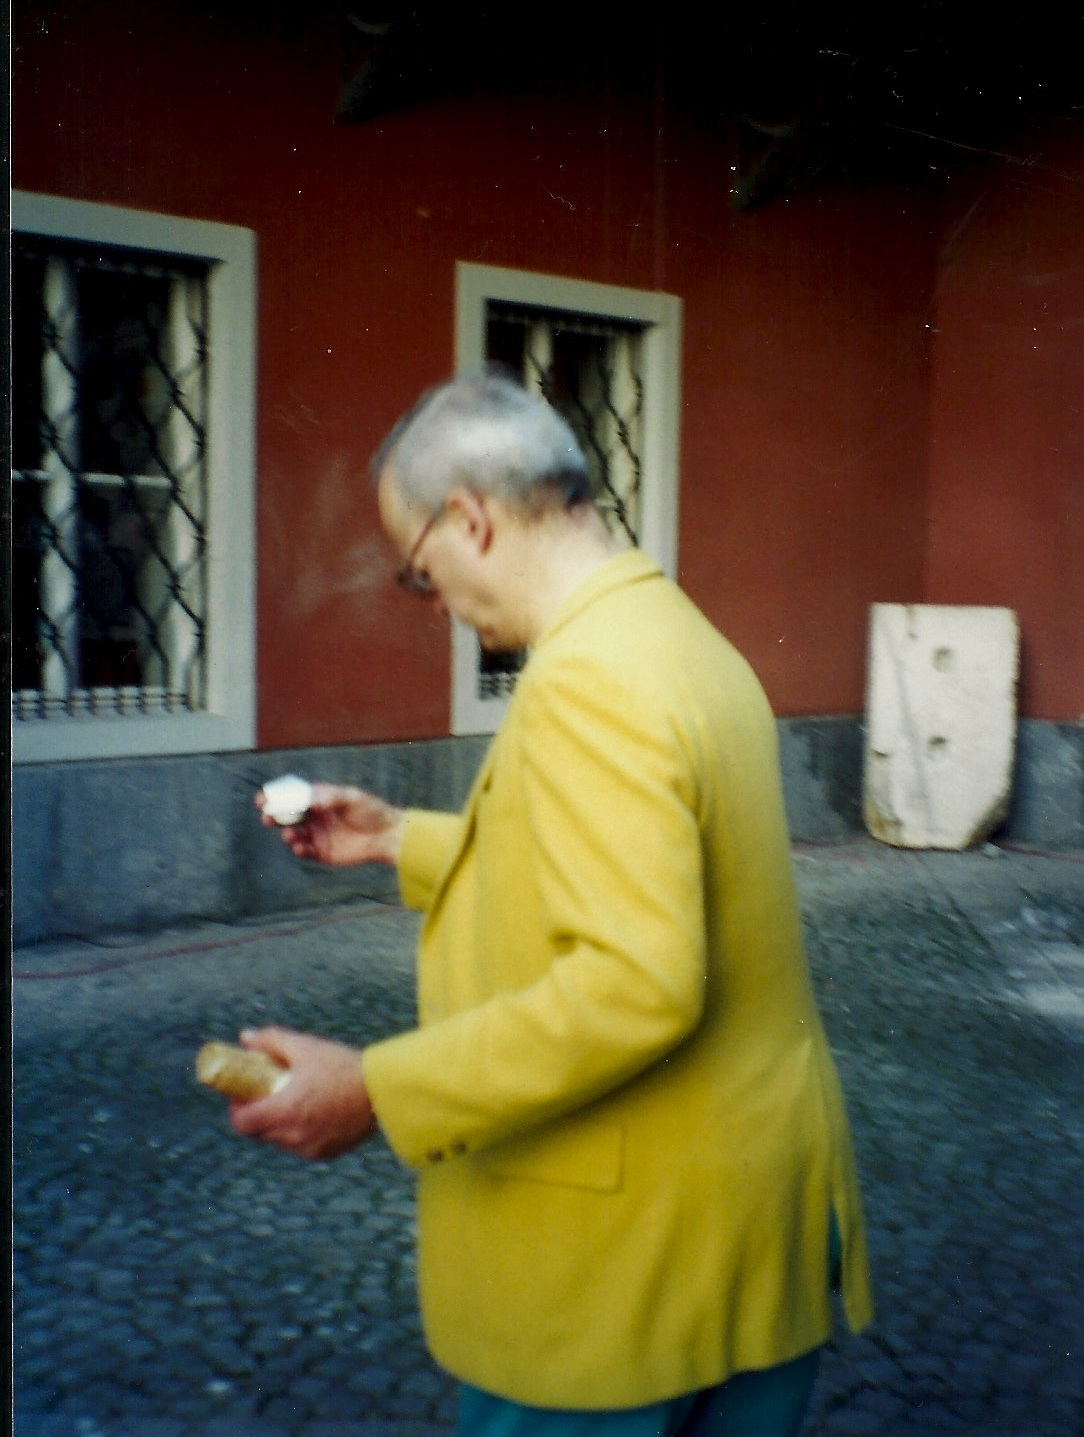 Tony Conrad  at the Steirischer Herbst festival, Graz, Austria, 1999 (photo credit: David Grubbs)